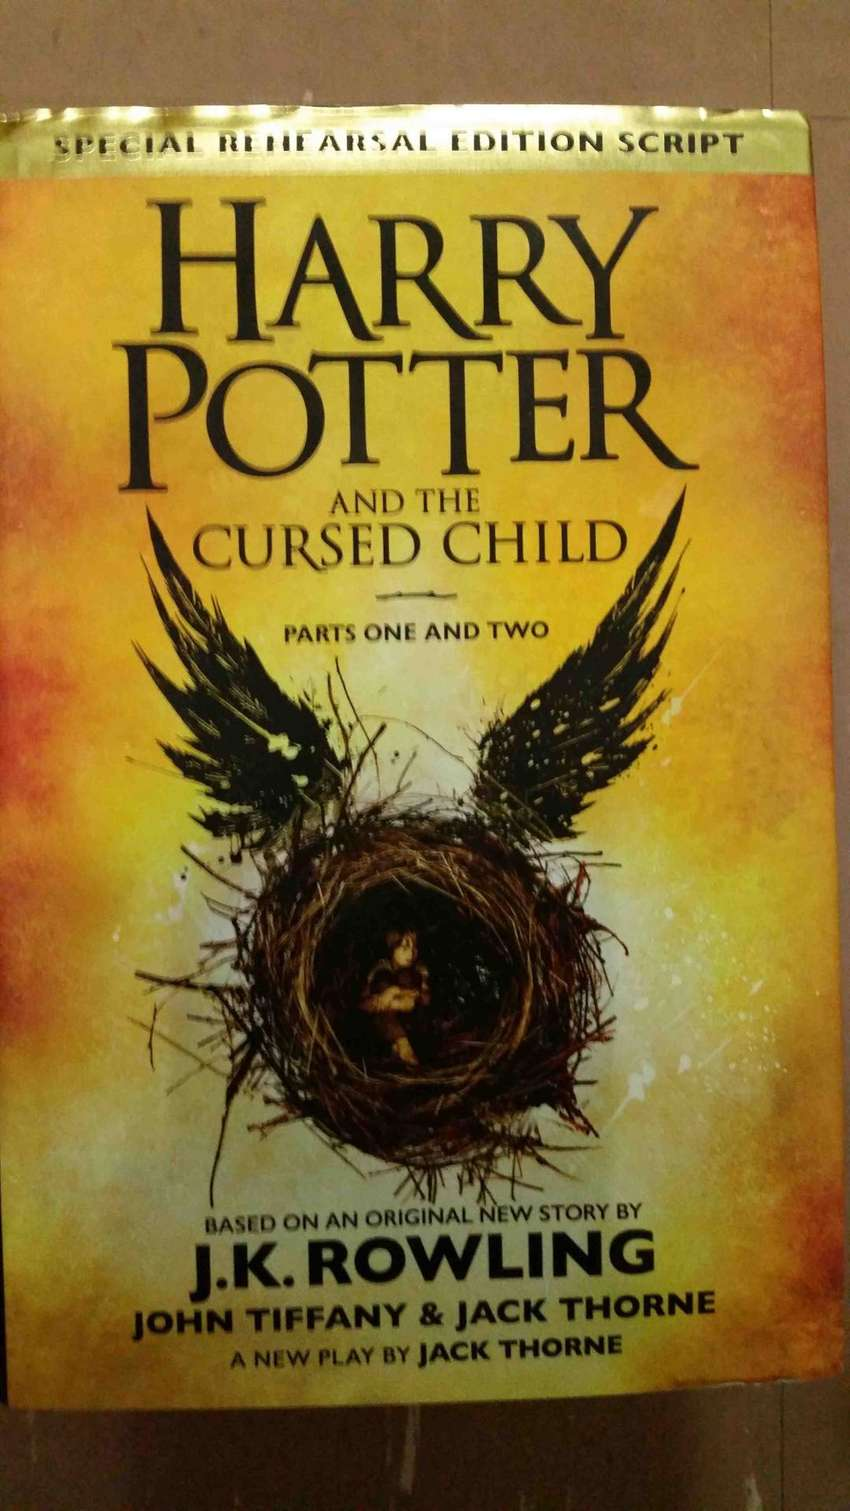 Harry Potter and the Cursed Child - J.K. Rowling [Part 1 + 2] 0